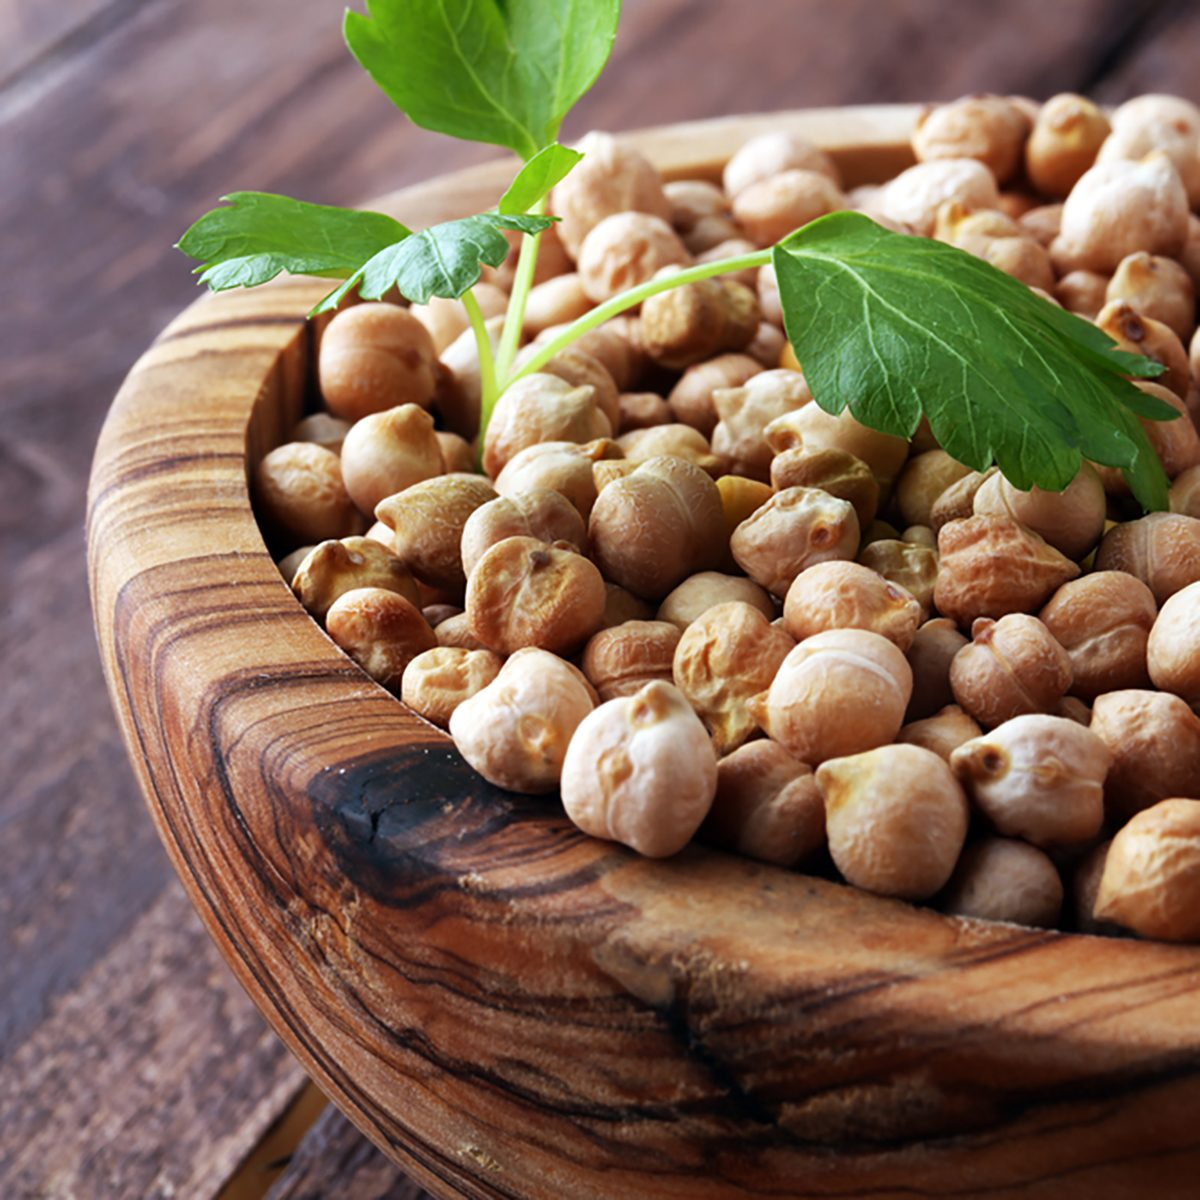 Raw Chickpeas on a bowl. Chickpeas is nutritious food.